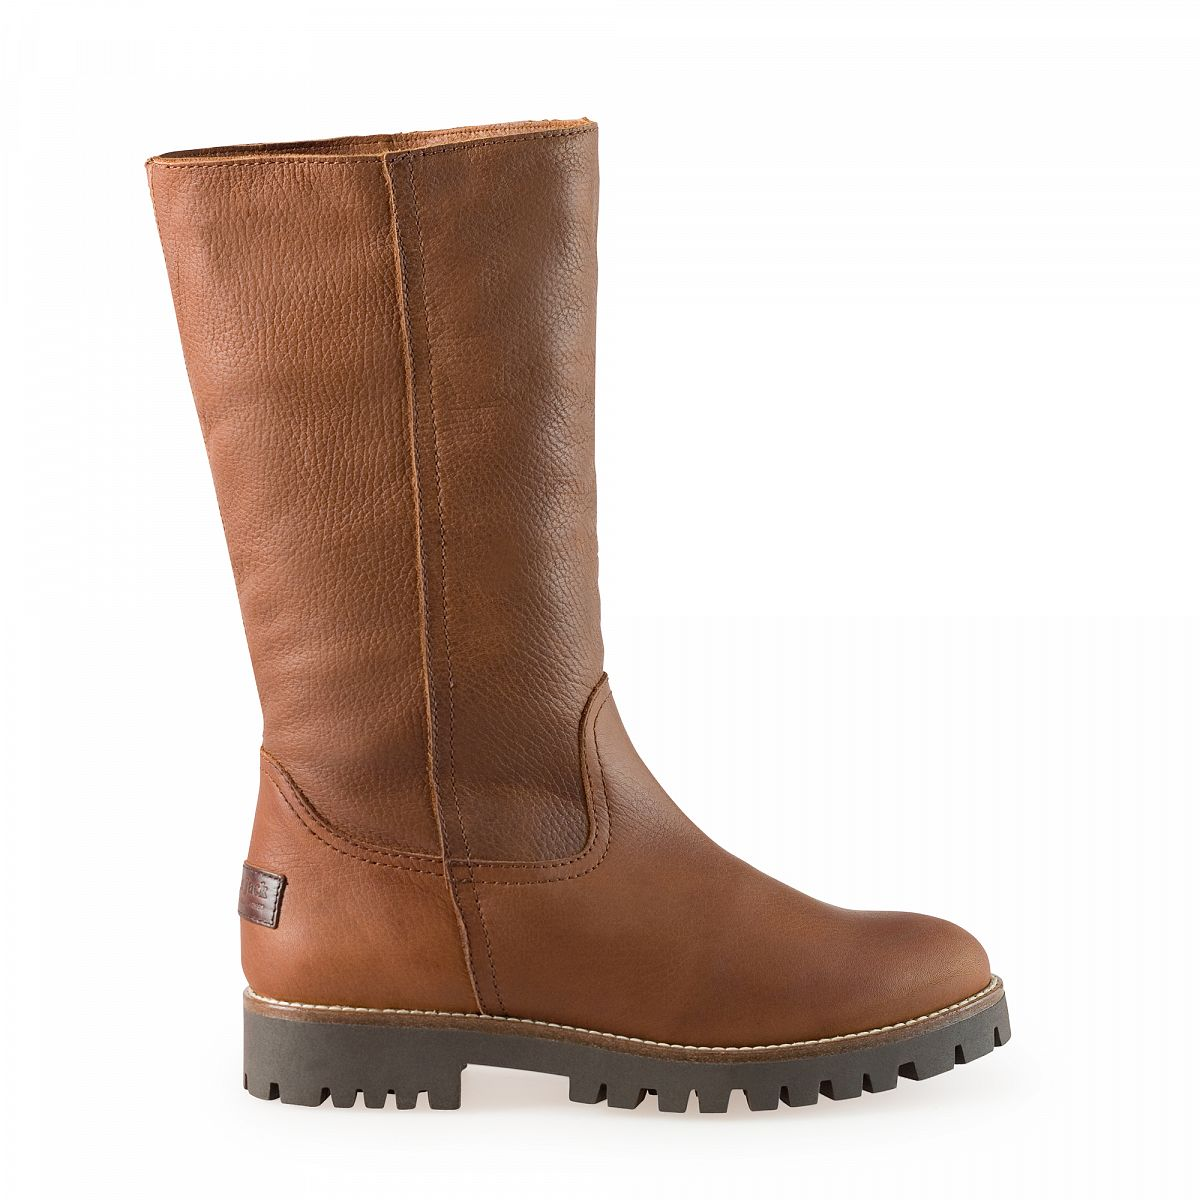 Womens boots tania bark panama jack 174 official online shop